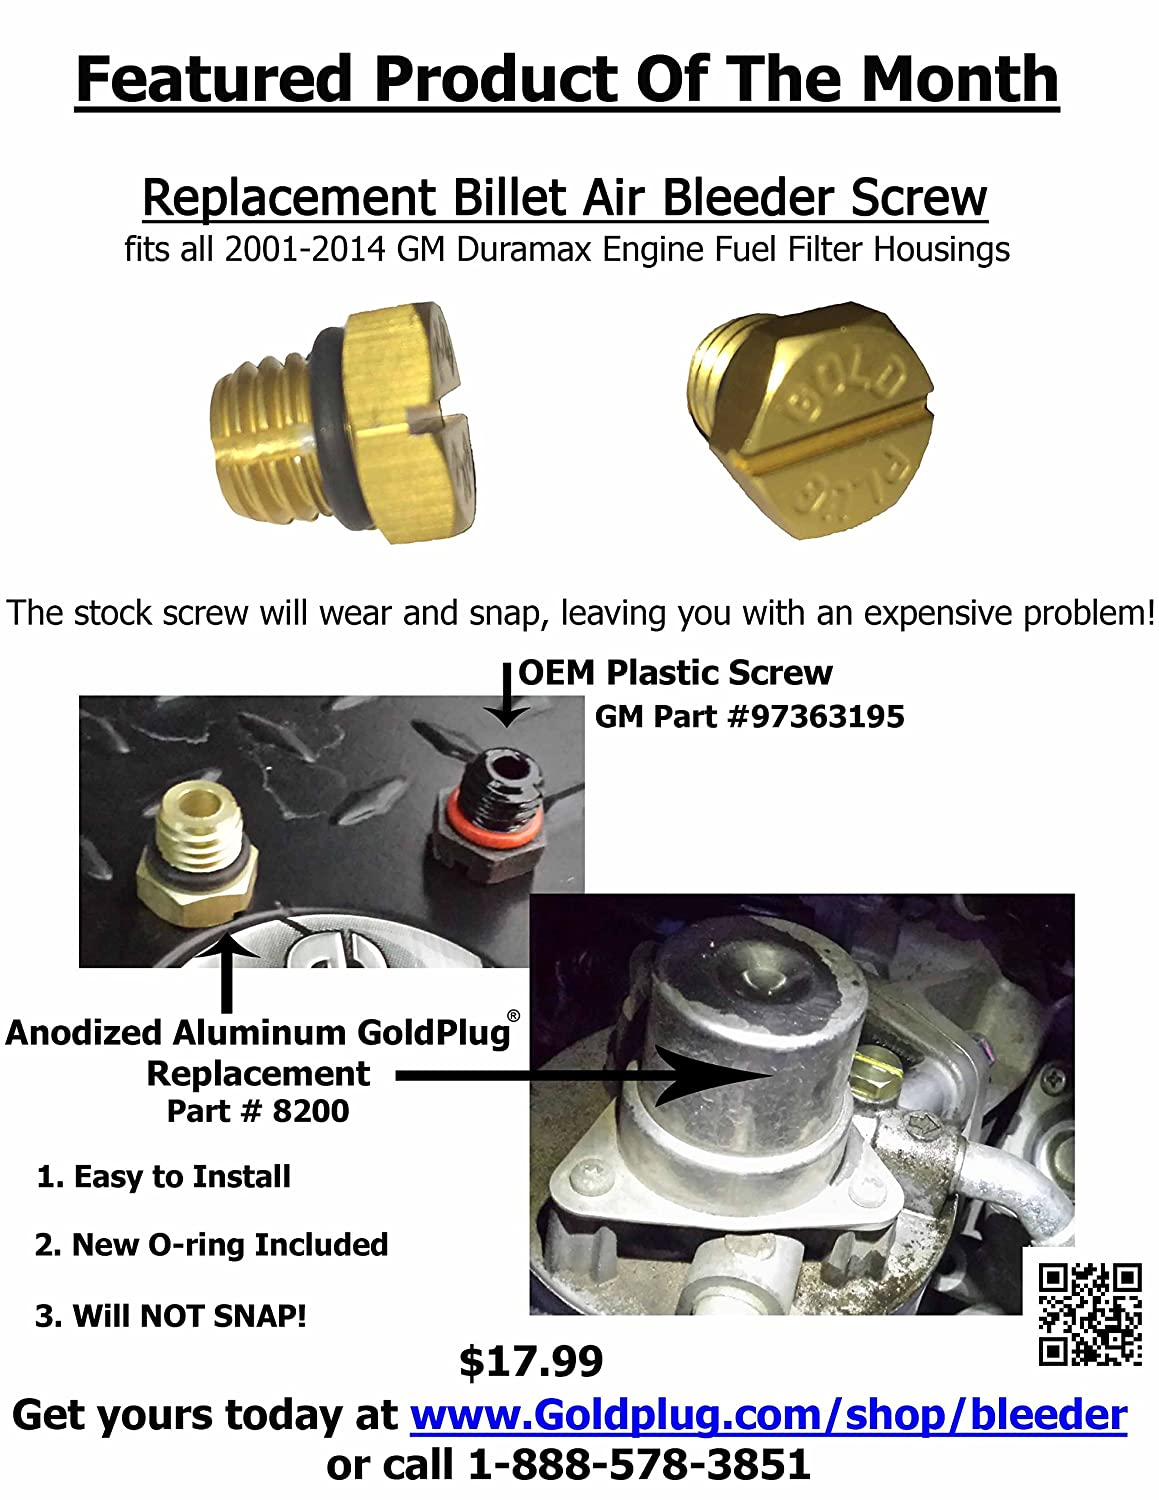 Amazon.com: Gold Plug 8200 Billet Air Bleeder Screw for 2001-2016 GM